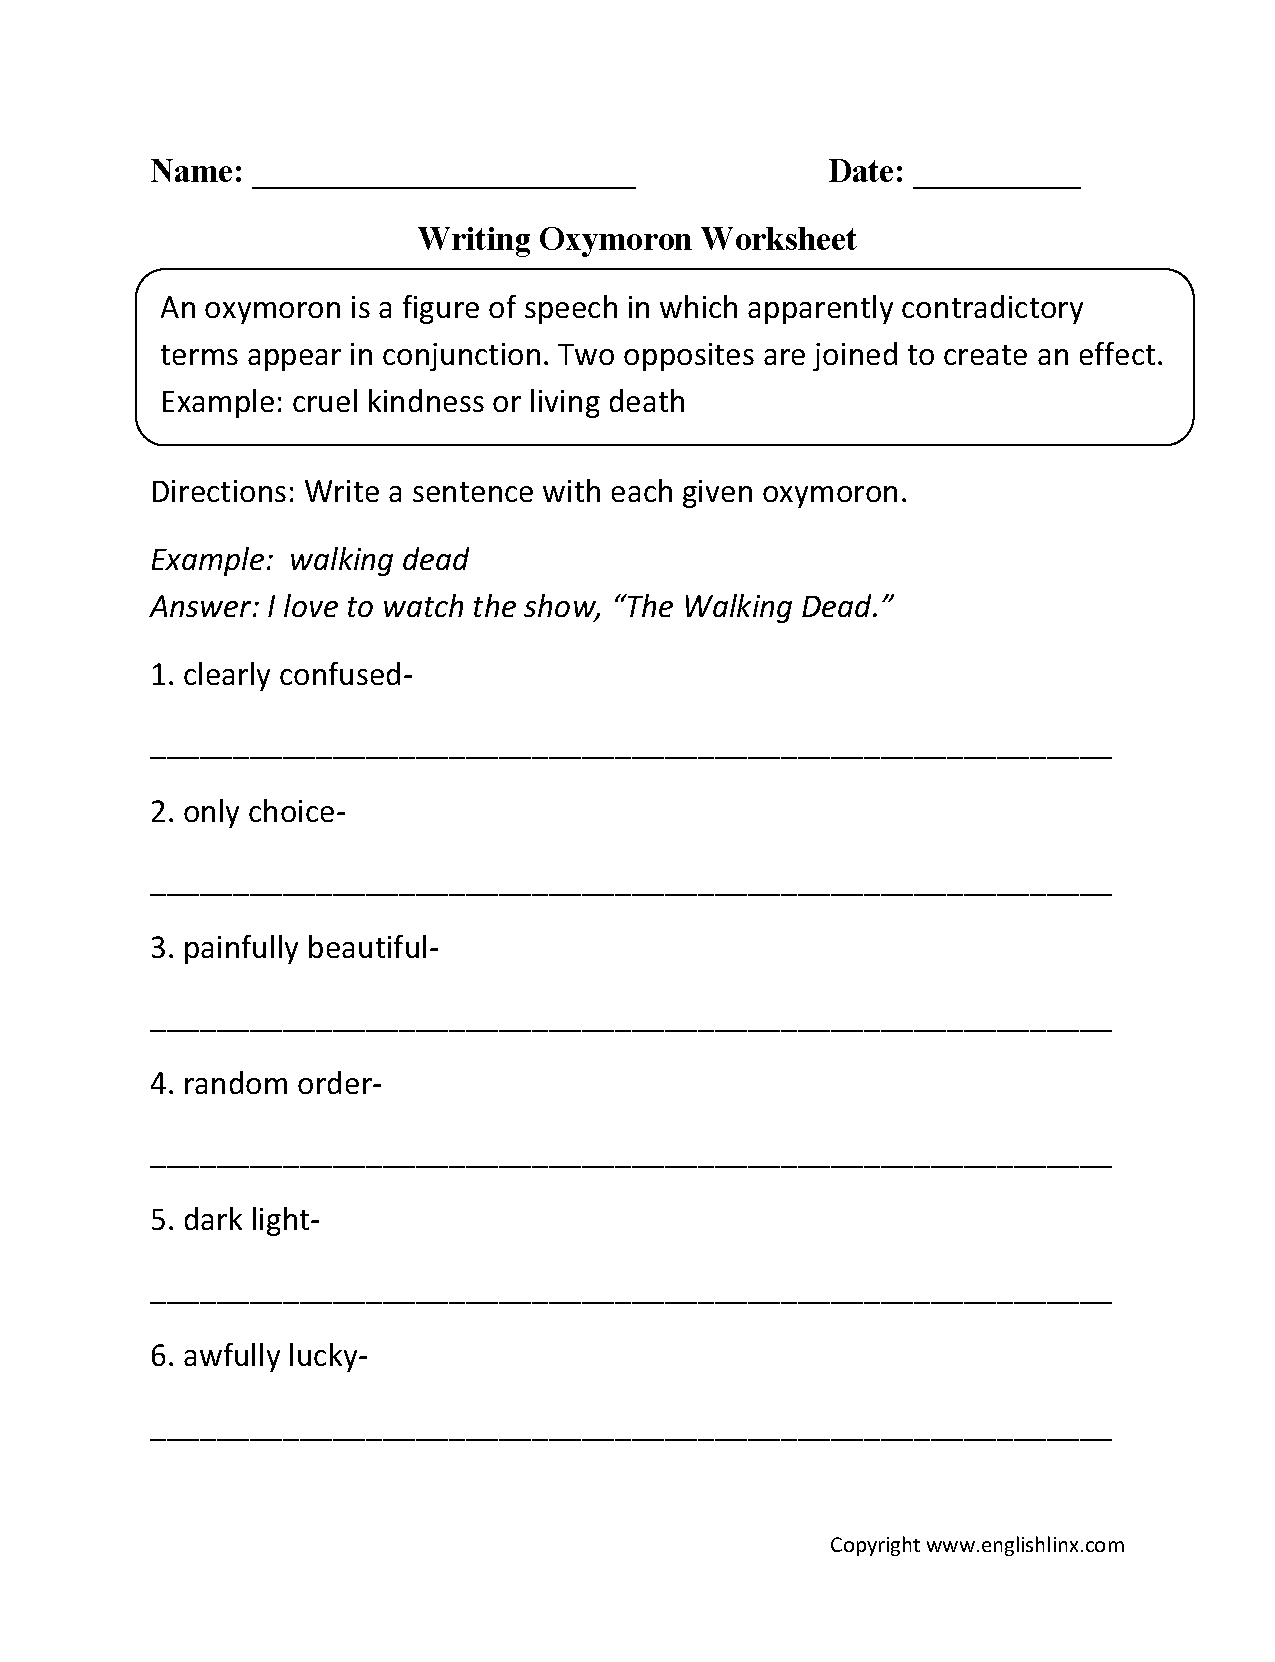 Worksheets Connotation Denotation Worksheet worksheet connotation worksheets luizah and essay site printables denotation safarmediapps connotations lessons tes teach download as doc